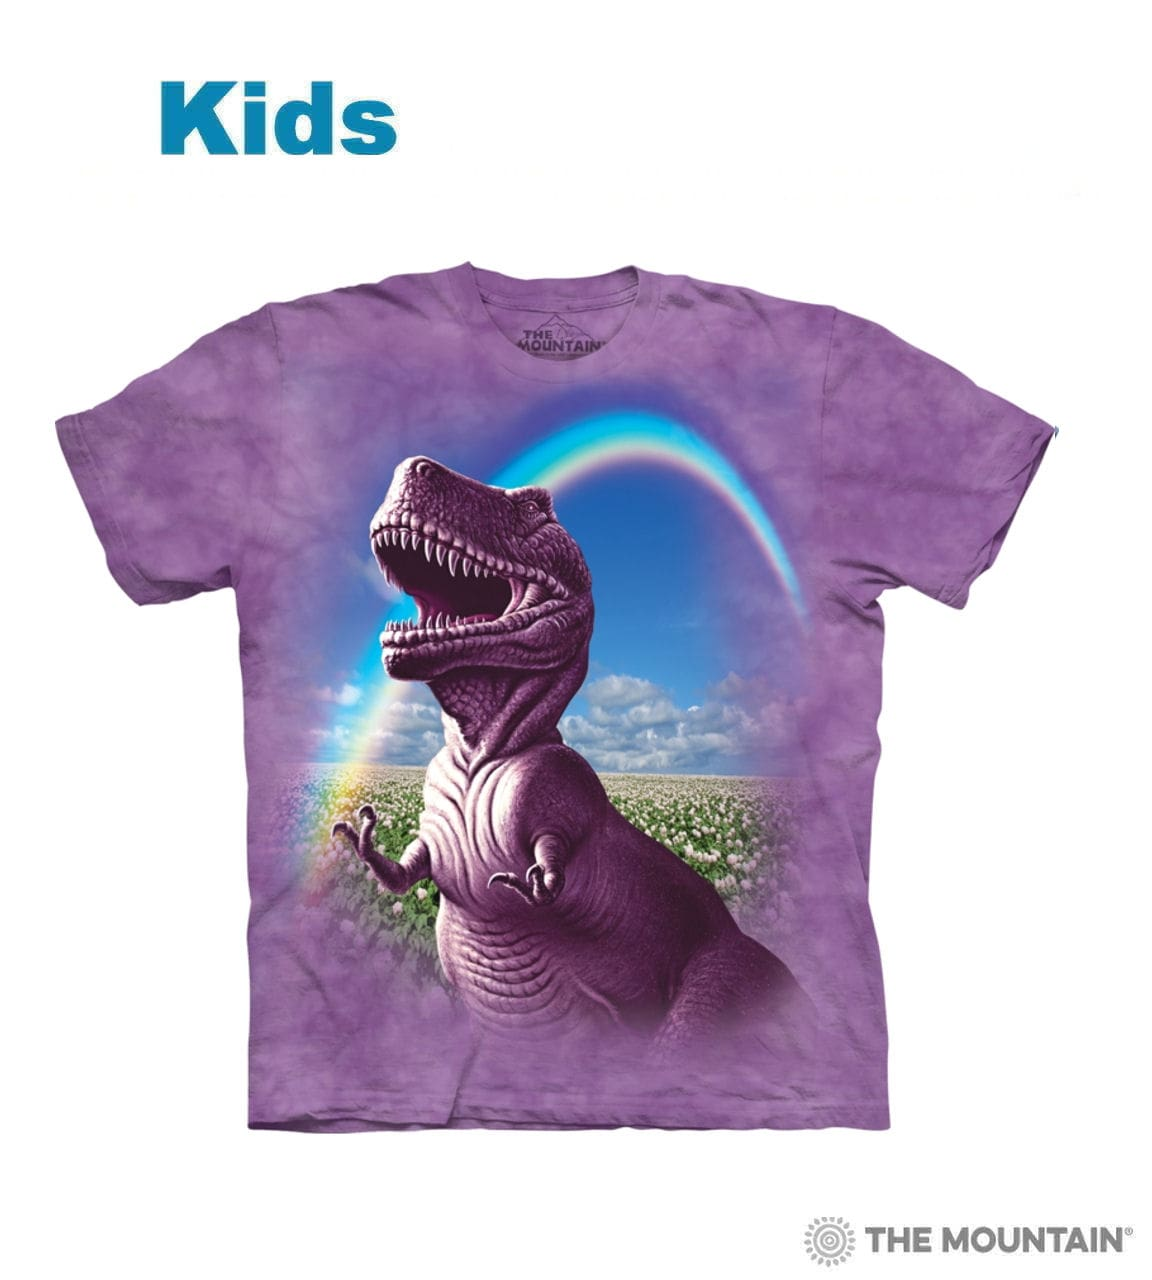 Kids Happiest T-Rex T-shirt - The Mountain®